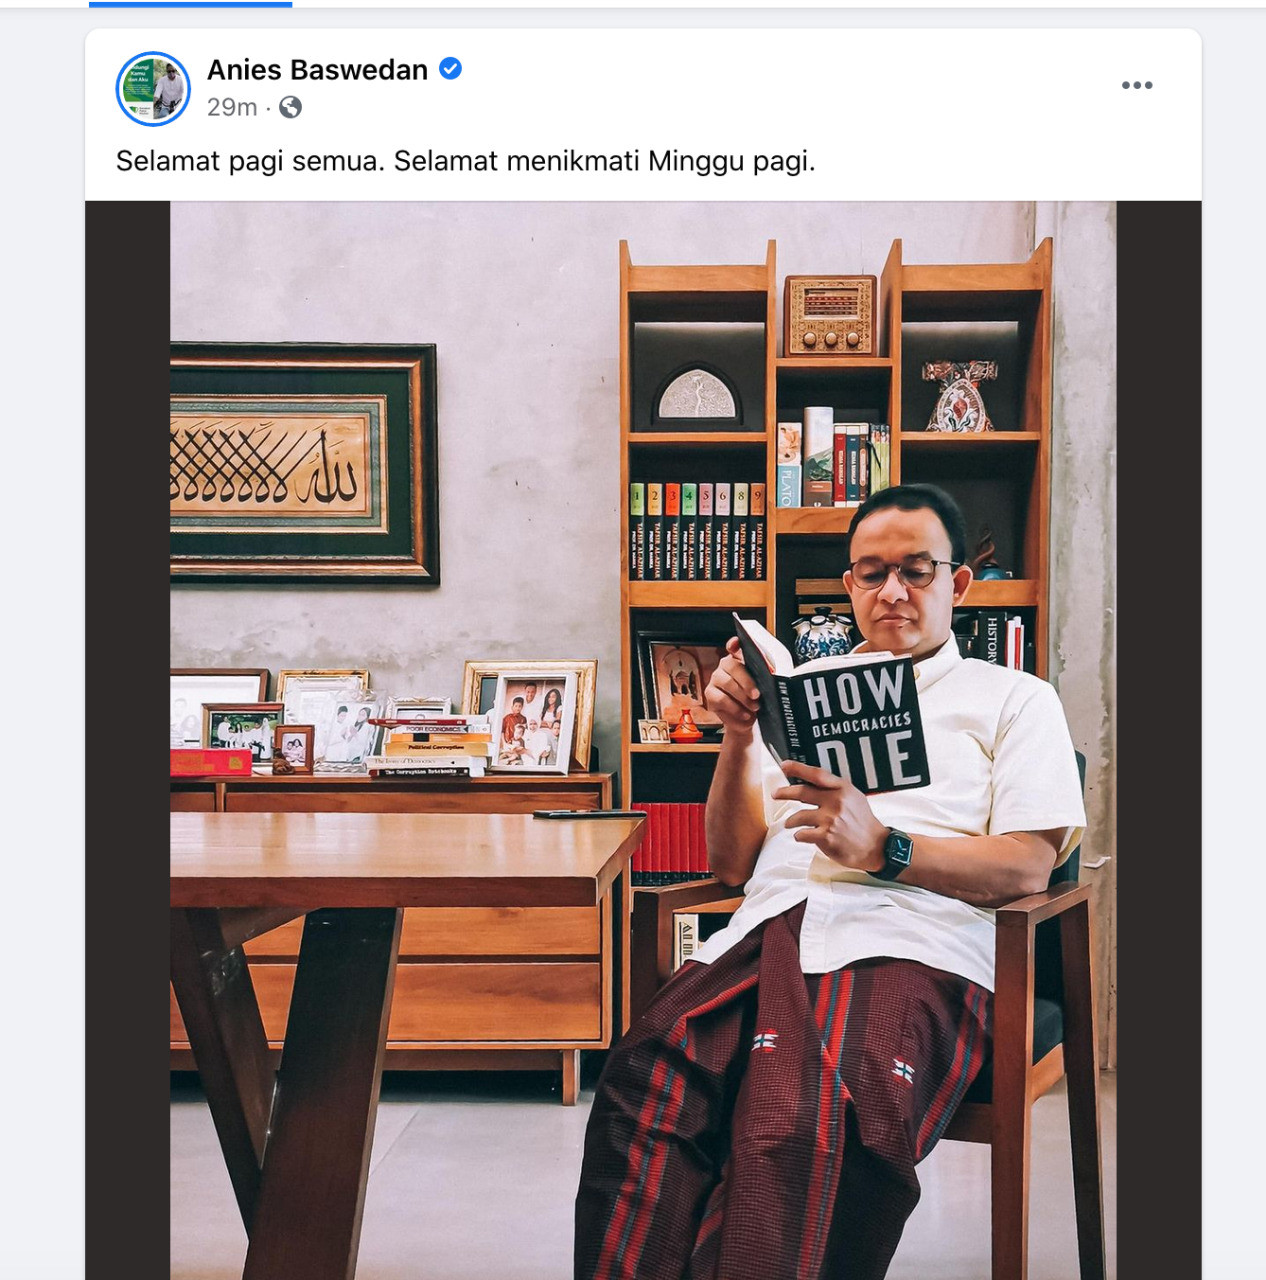 Photo of Anies reading 'How Democracies Die' fuels speculation on governor's views